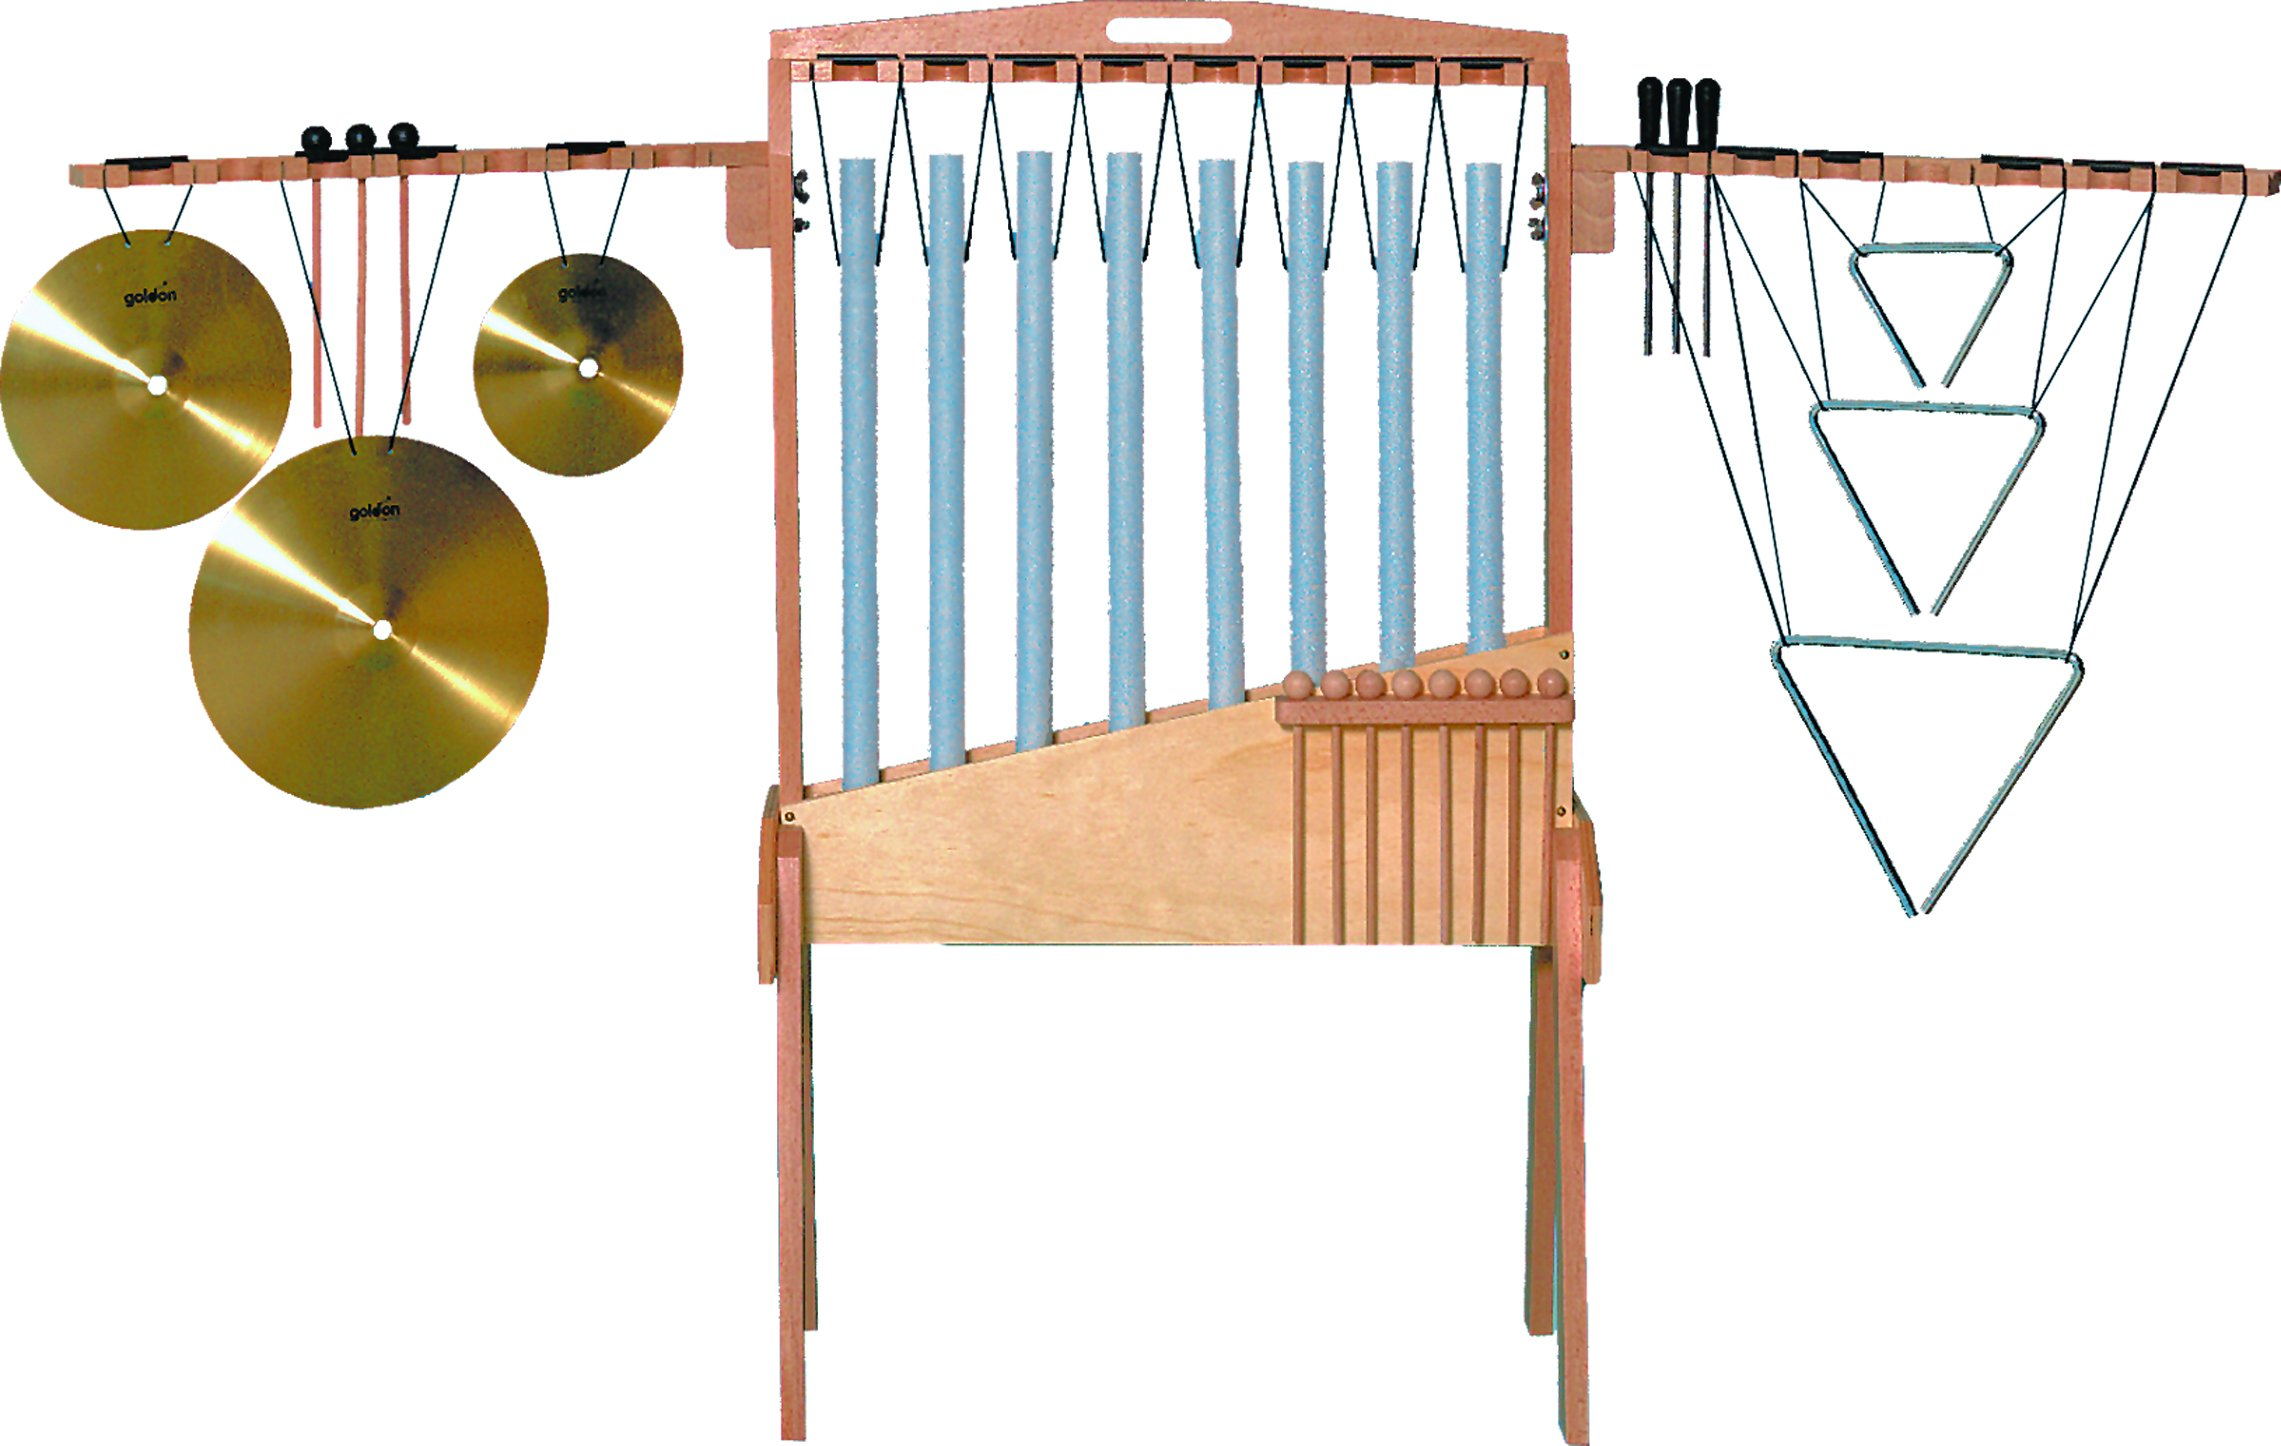 Goldon 33915 Percussion Frame with 8 Tubular Chimes